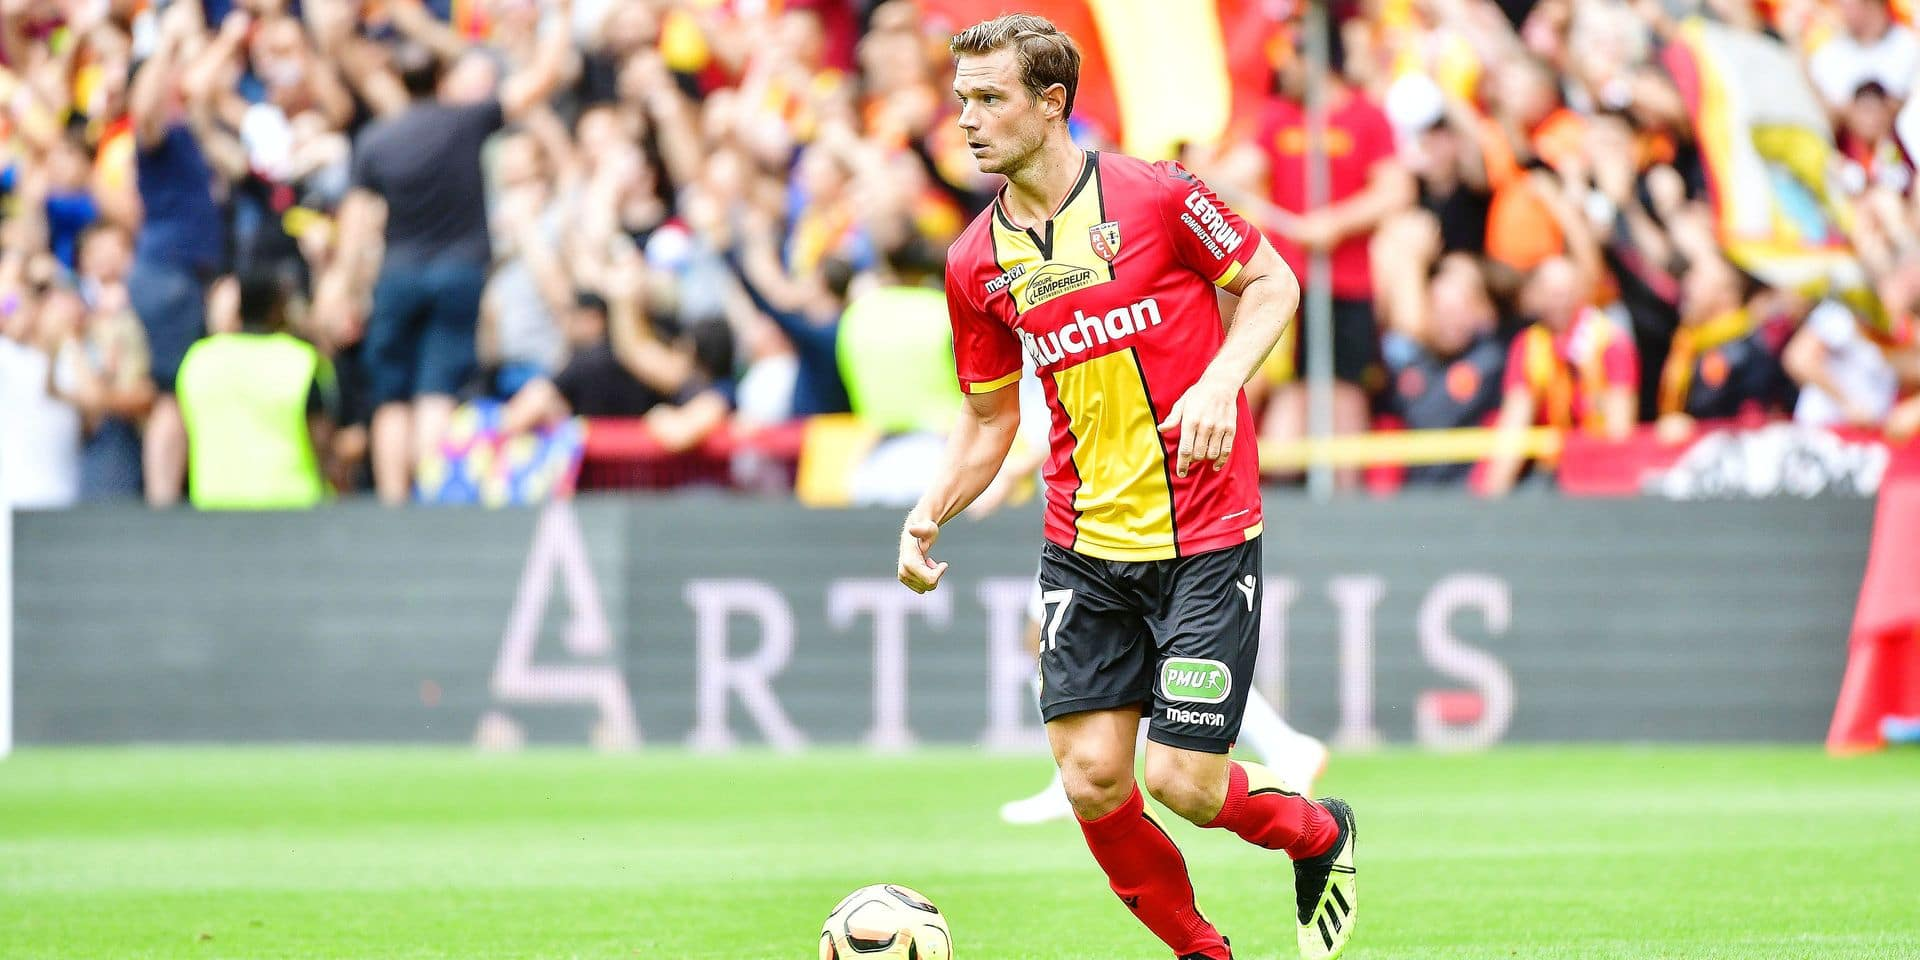 Guillaume Gillet of Lens during the French Ligue 2 match between RC Lens and Troyes at Stade Bollaert-Delelis on August 18, 2018 in Lens, France. (Photo by Dave Winter/Icon Sport)